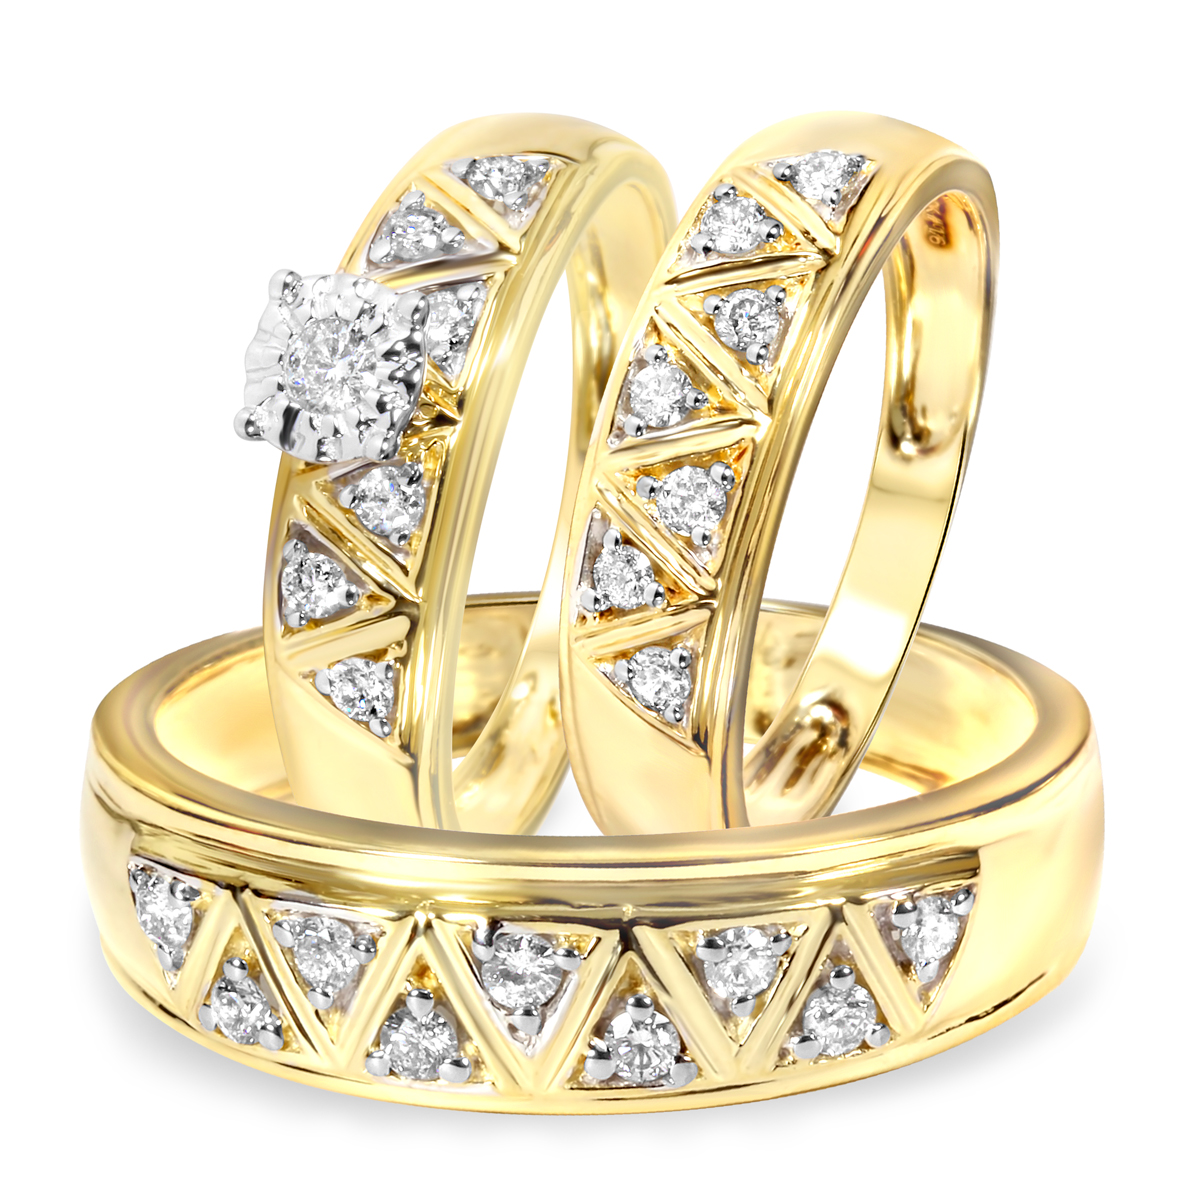 1 2 Carat Diamond Trio Wedding Ring Set 10K Yellow Gold My Trio Rings